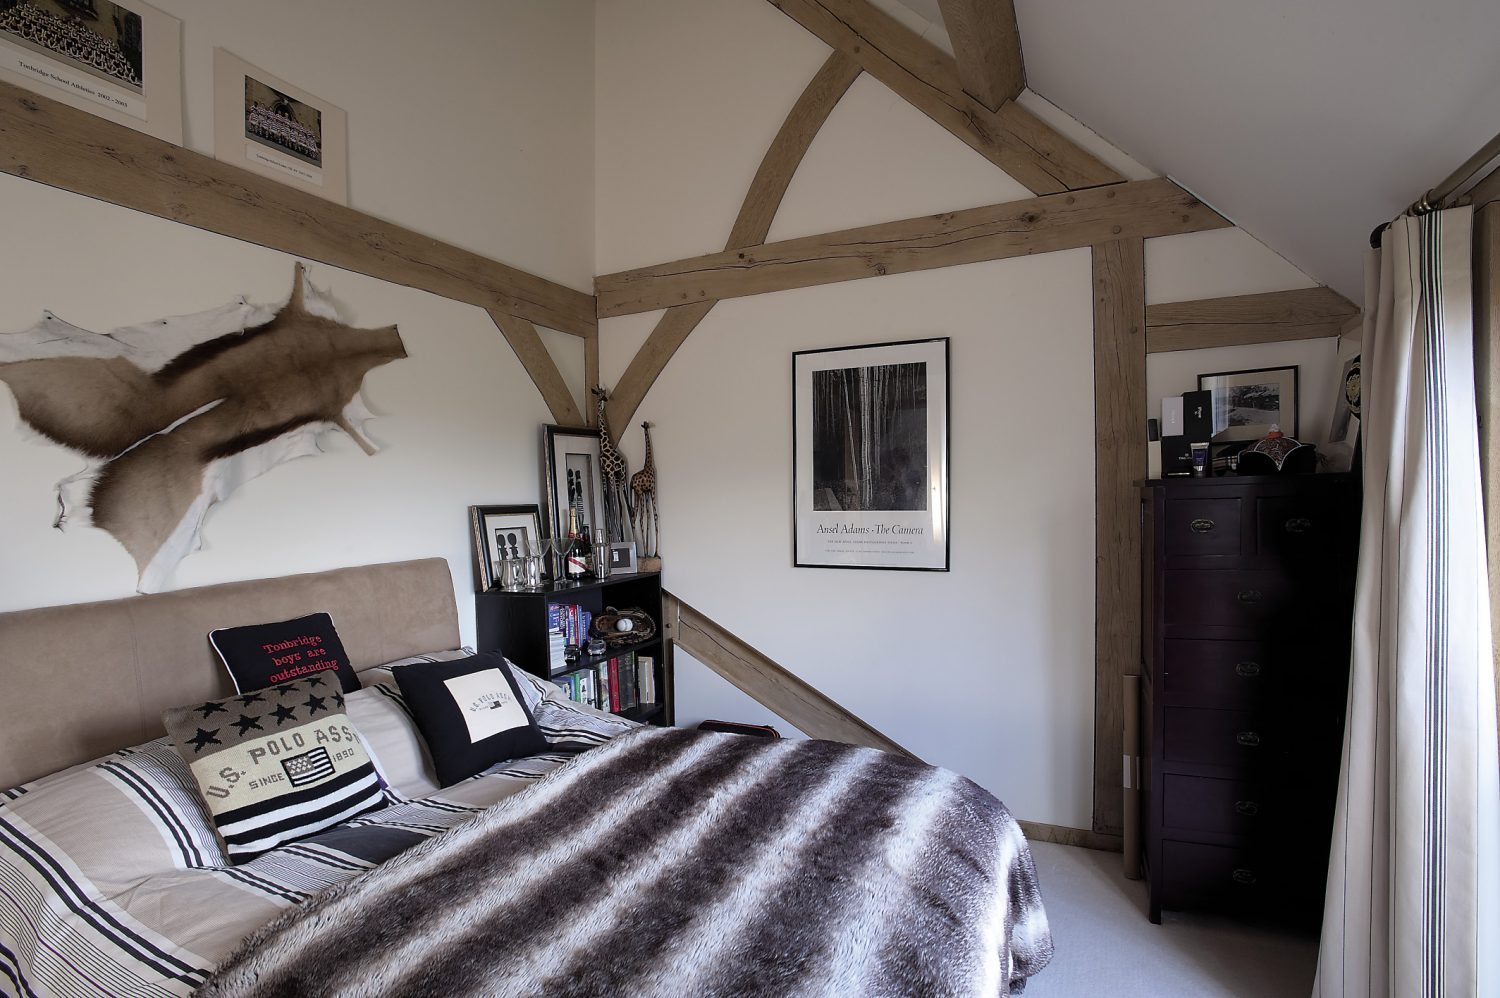 Teddy's room displays masses of school, university and sports team pictures along with artefacts collected from South Africa, while his younger brother Patrick reveals his love of music in a room that is full of guitars and vintage posters